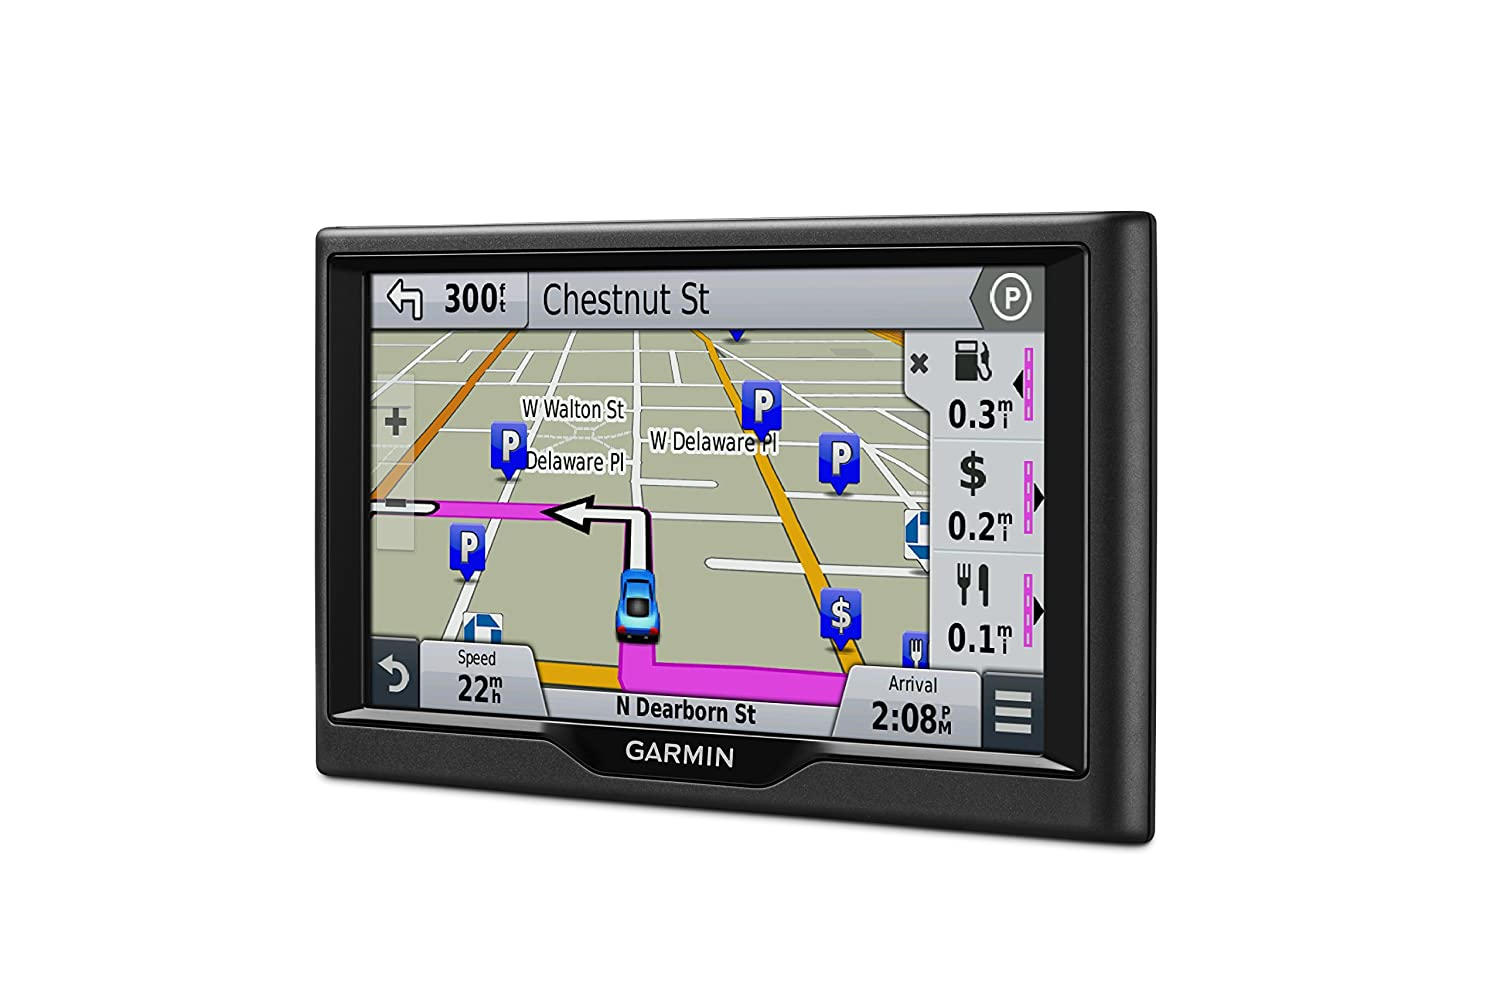 Amazoncom Garmin Nuvi LM Inch GPS Navigator Discontinued By - Garmin nuvi usa map download